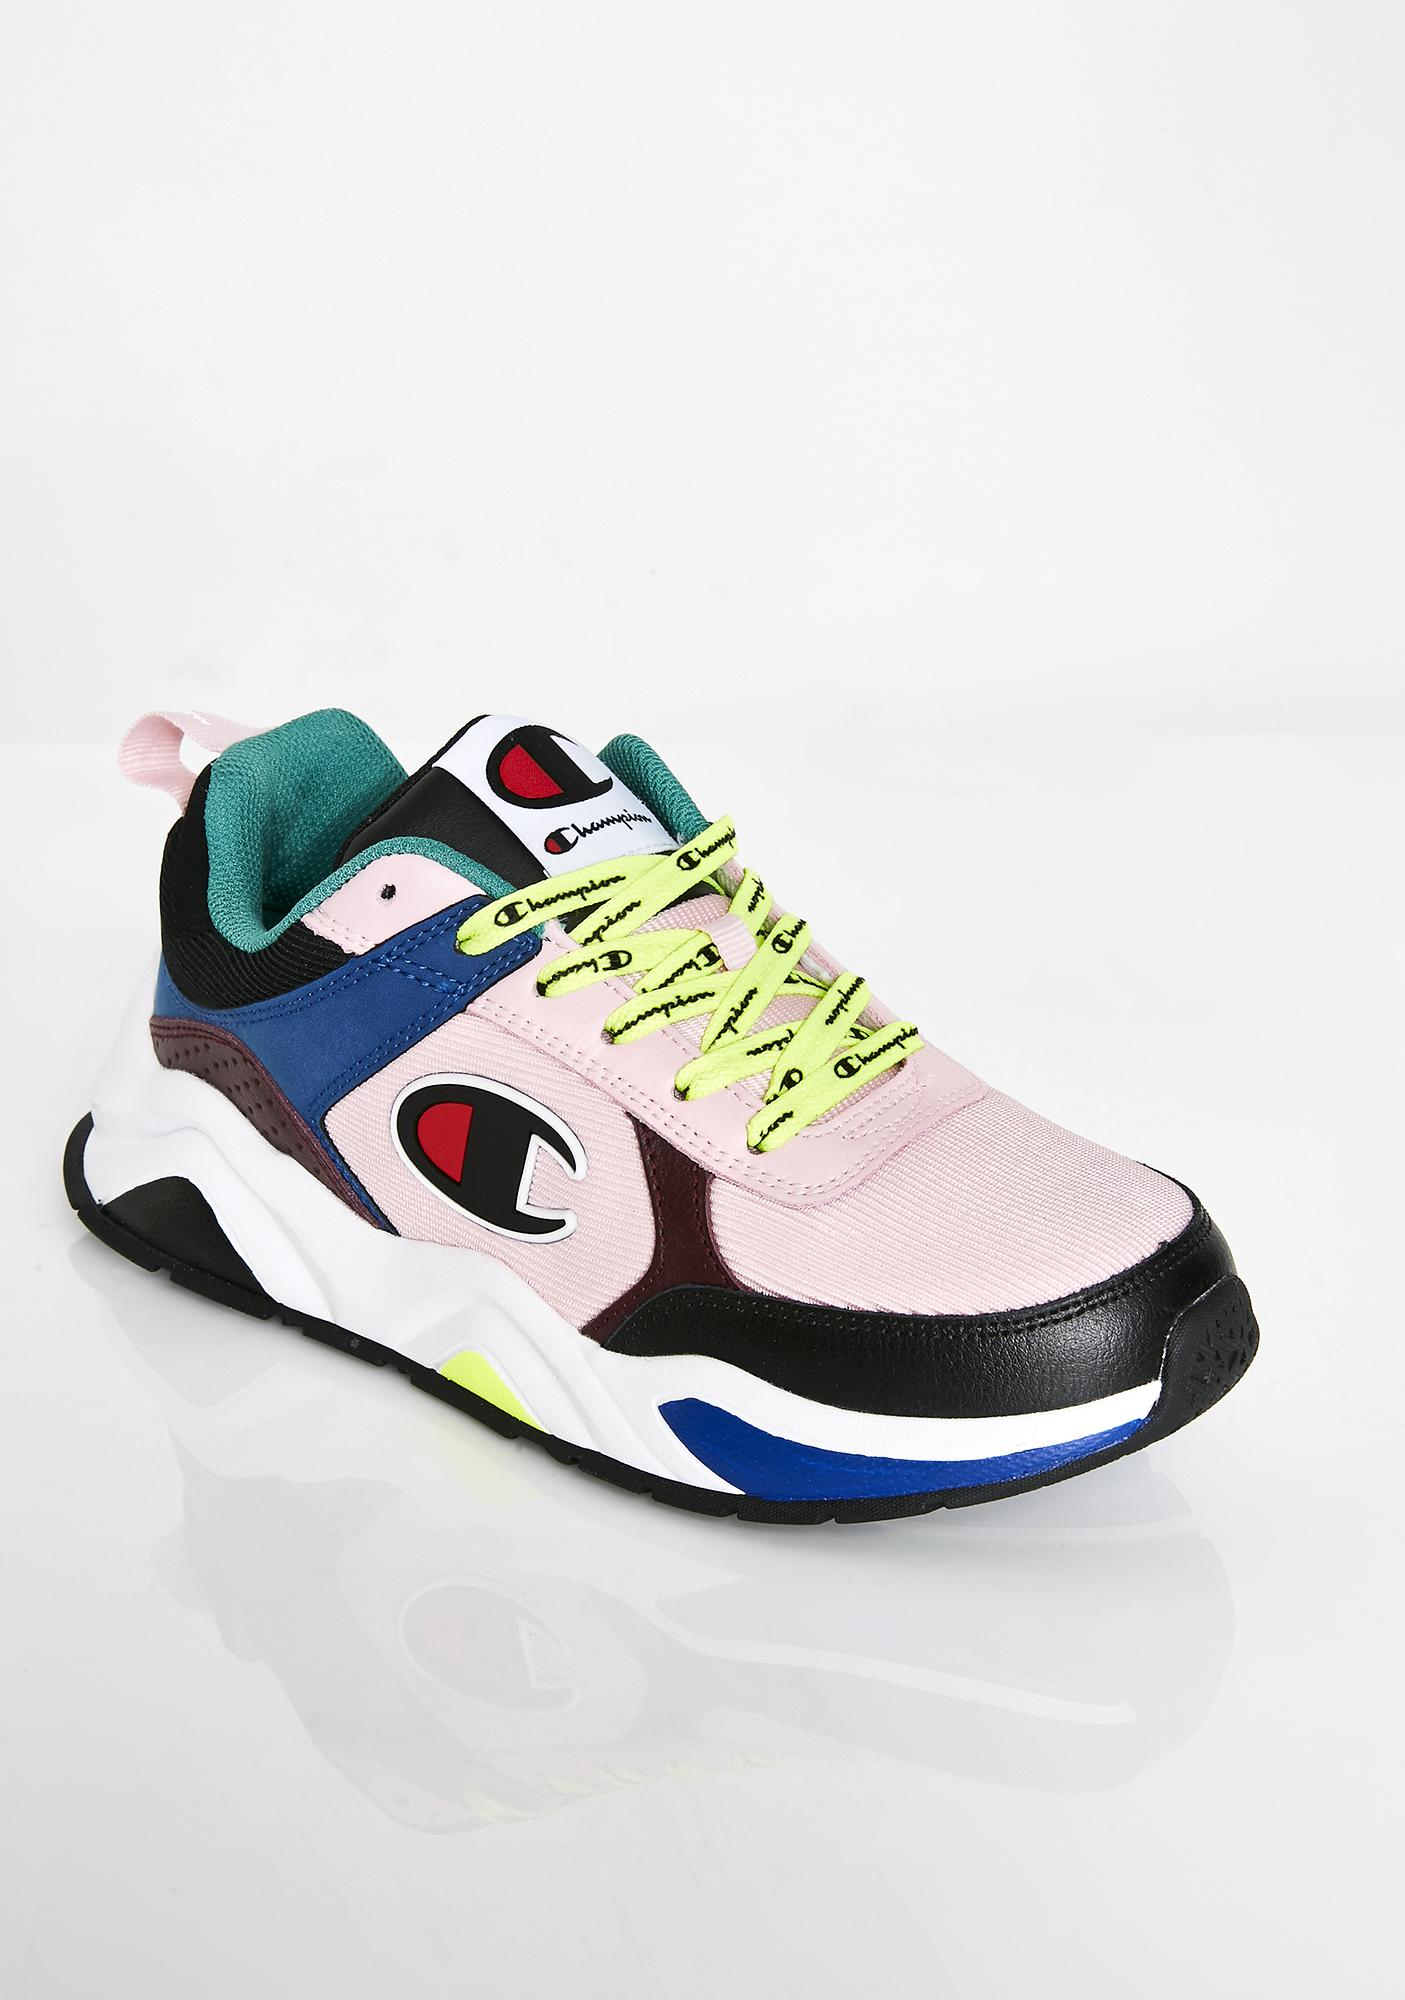 b236f60aed5 Champion Rubber Shoes Review - Style Guru  Fashion